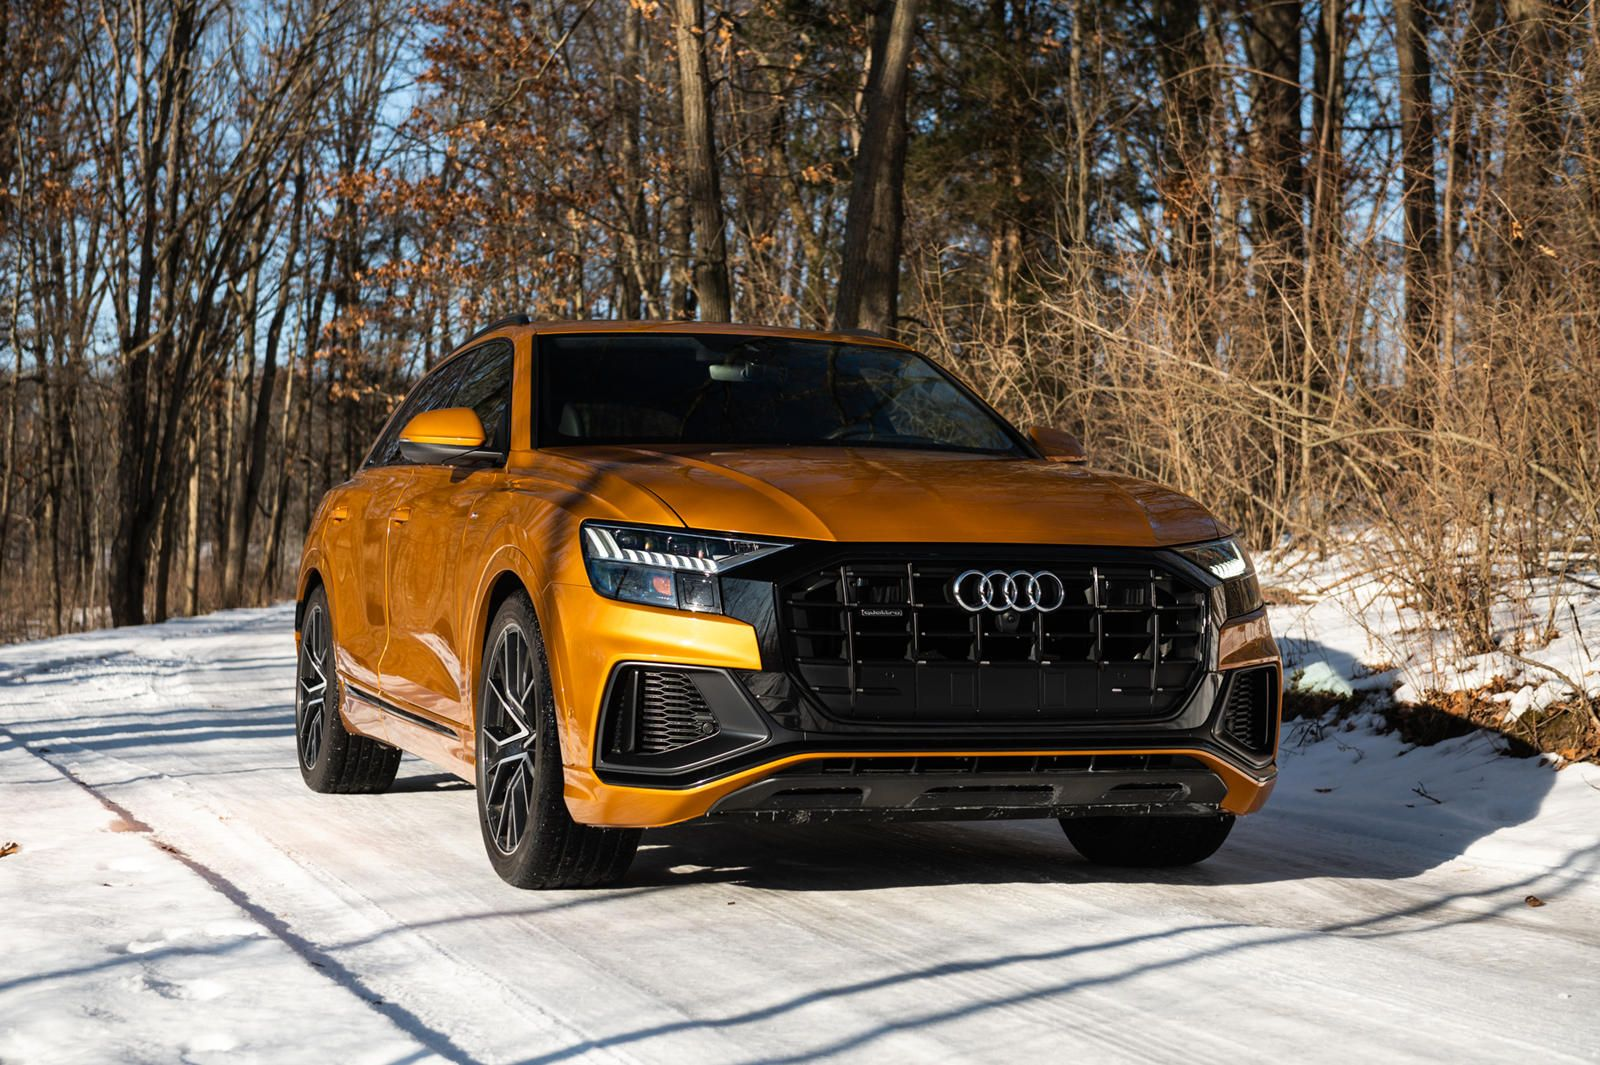 2020 Audi Q8 Test Drive Review A Quattro For The Tech Queens And Kings In 2020 Audi Bmw X7 Bmw X6